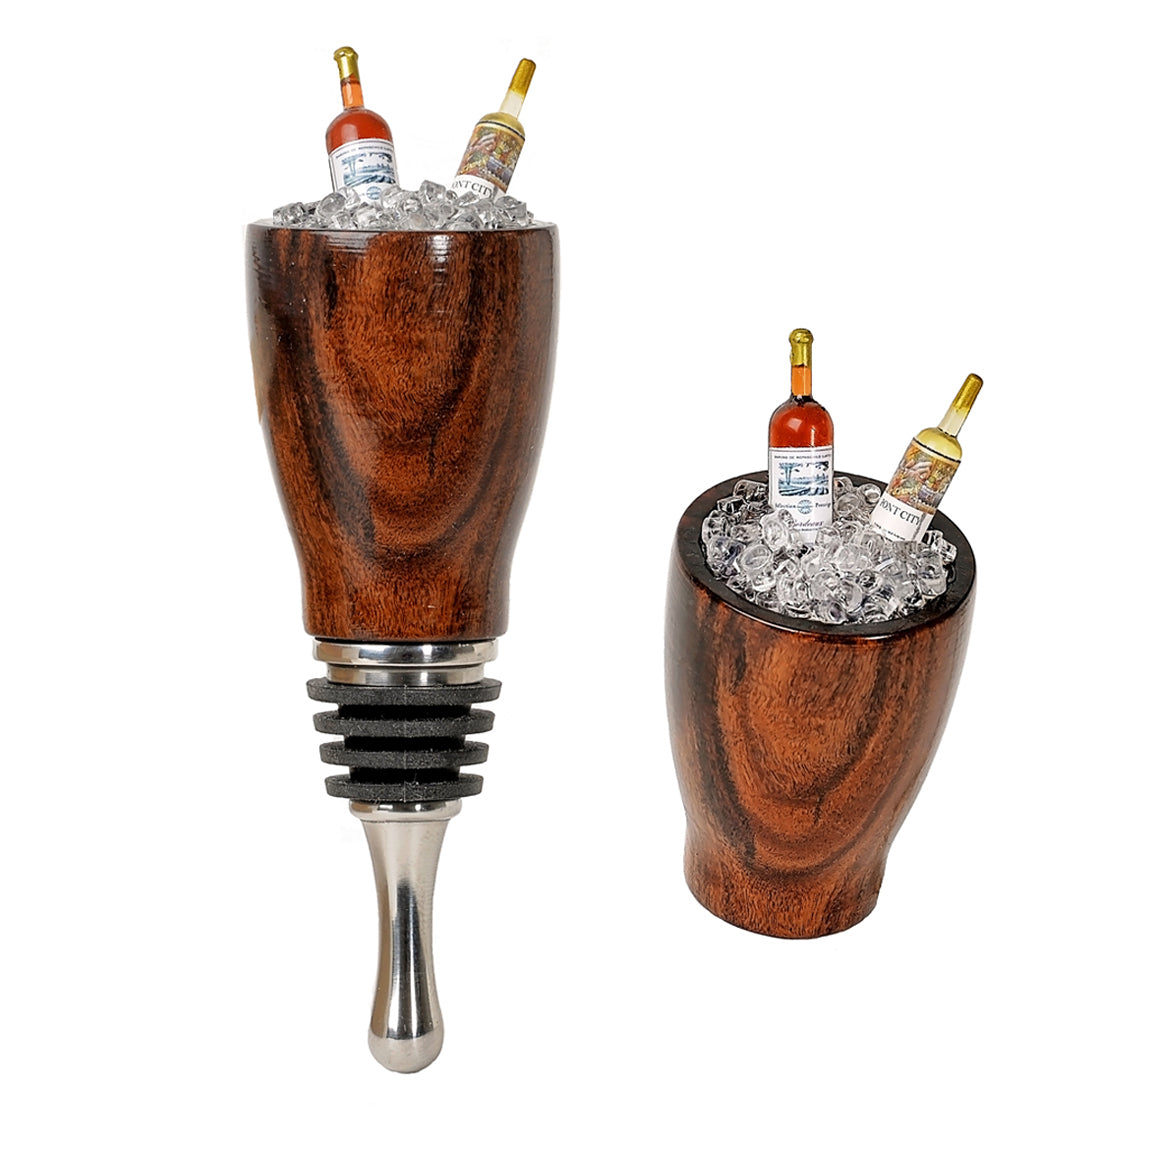 Wine Stopper with Wine Bottles in Ice